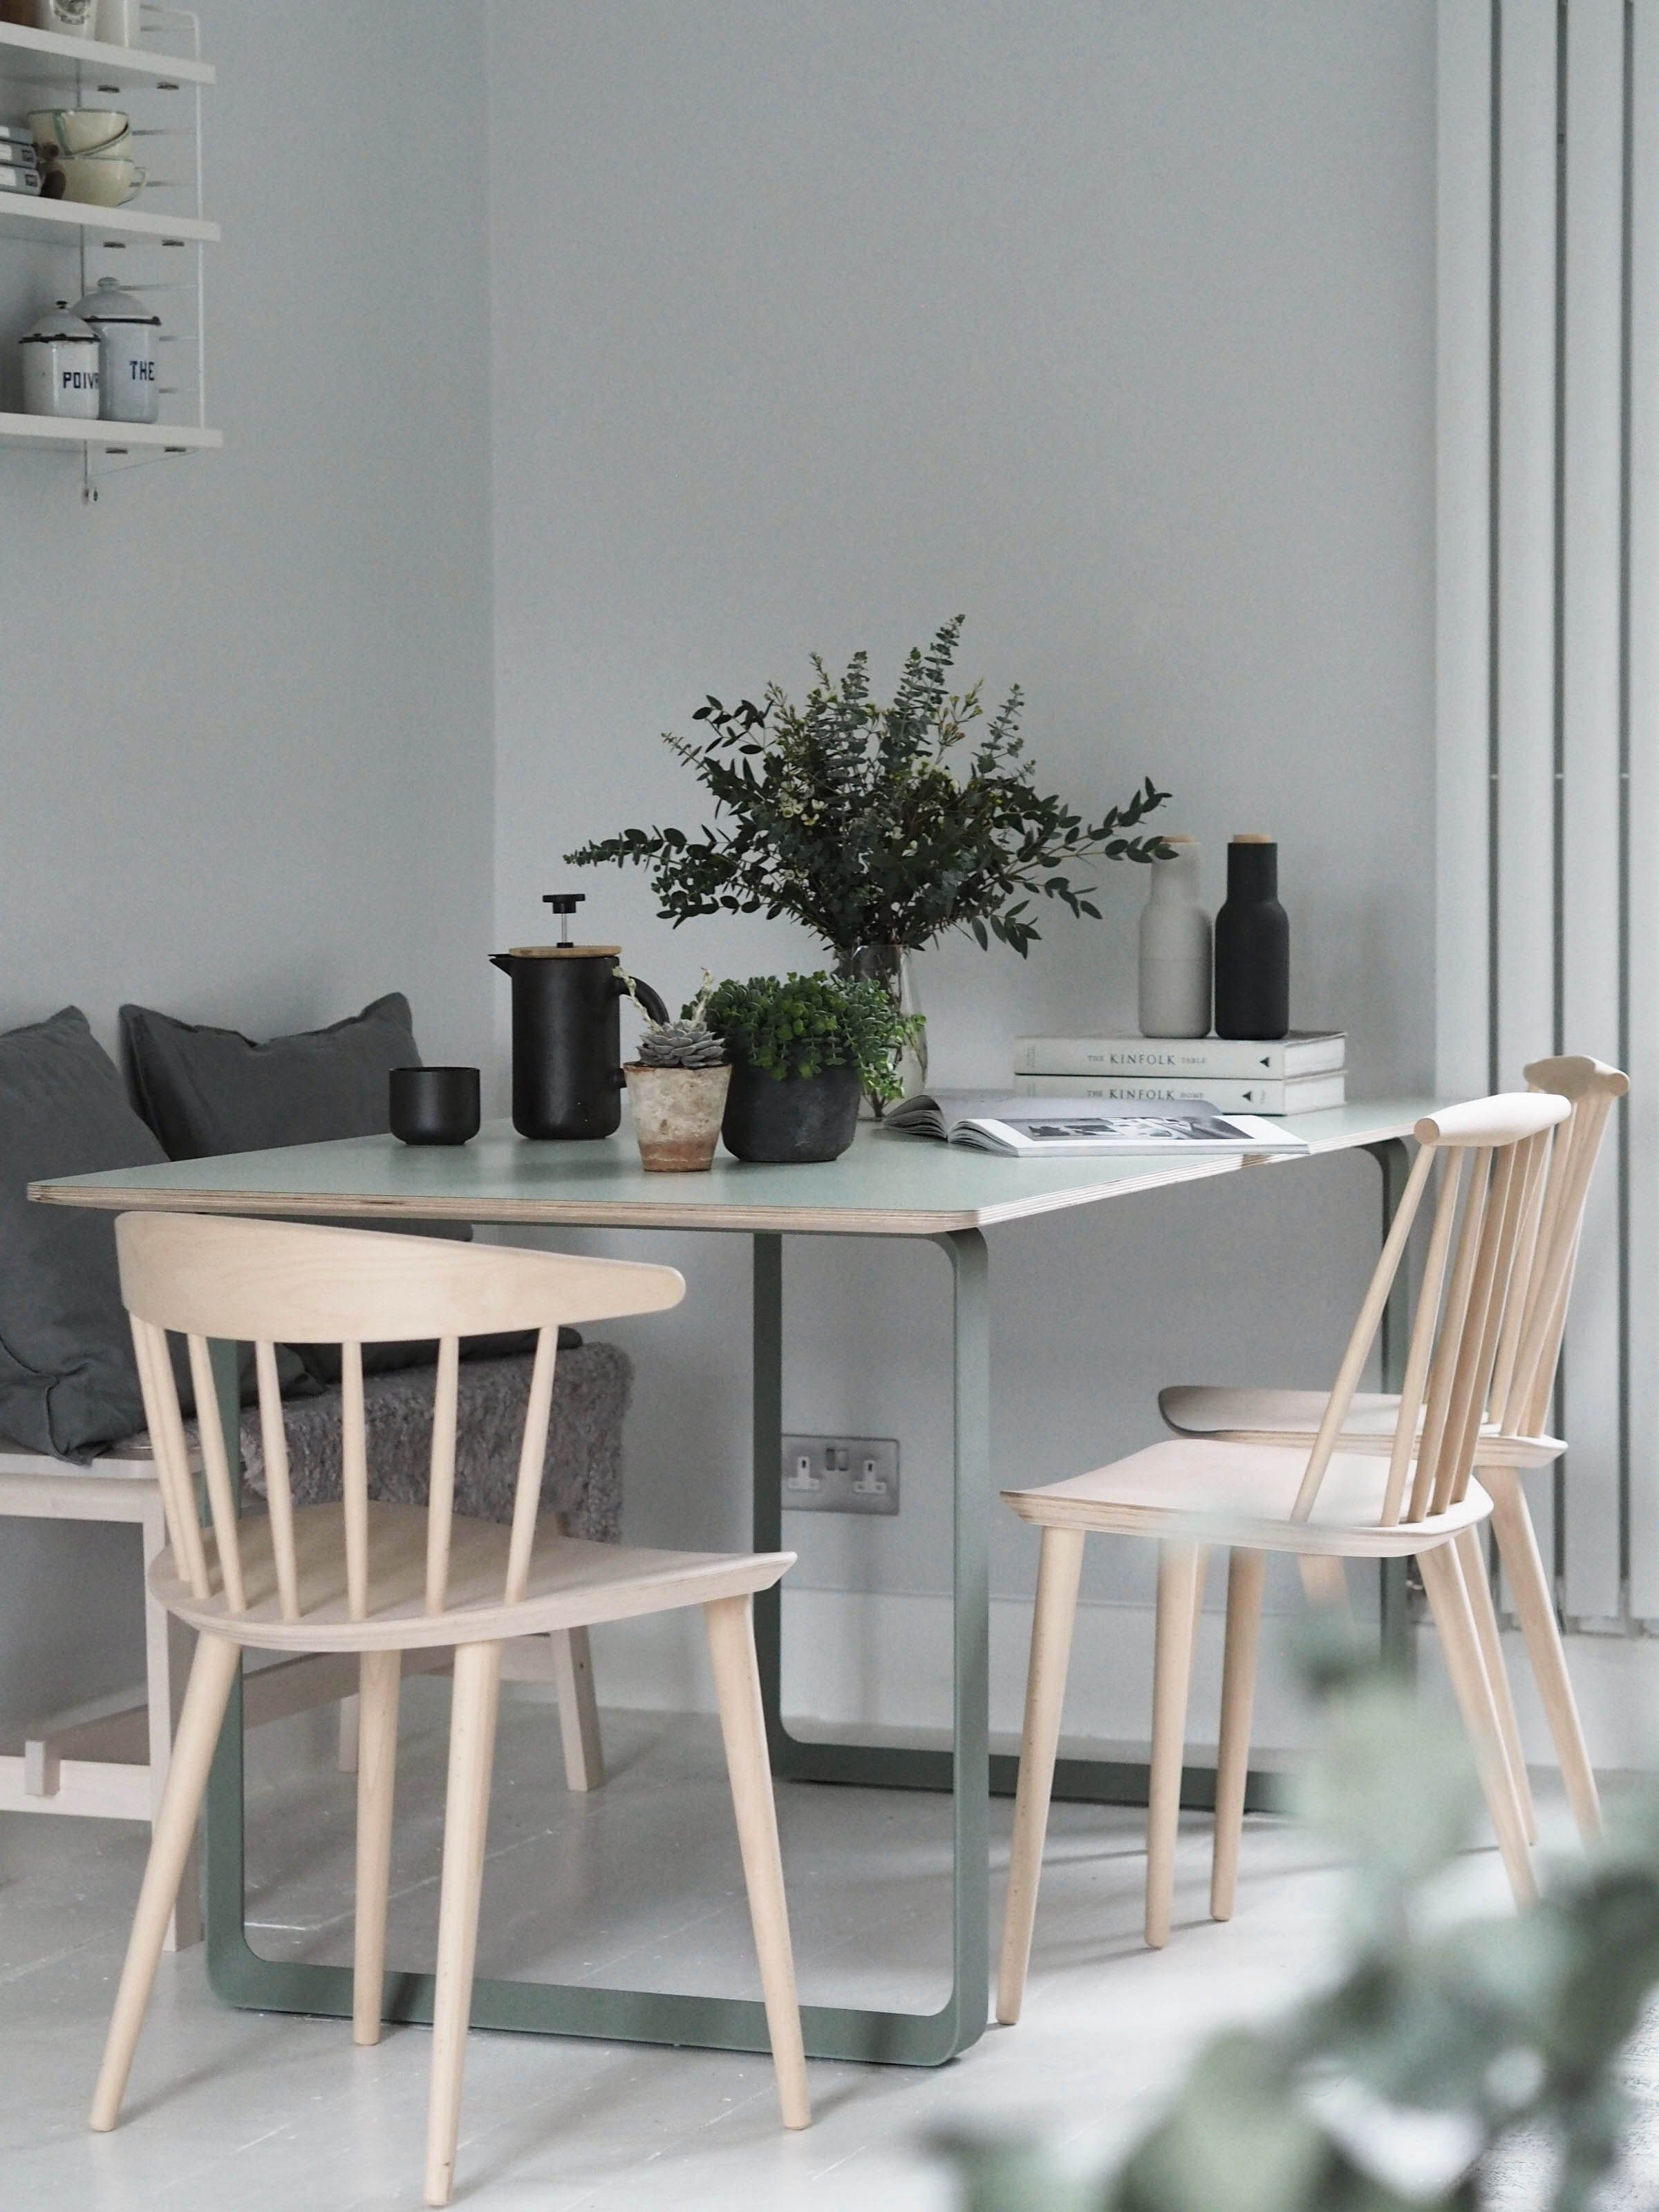 My Muuto 70 70 table modern Scandinavian design dining table